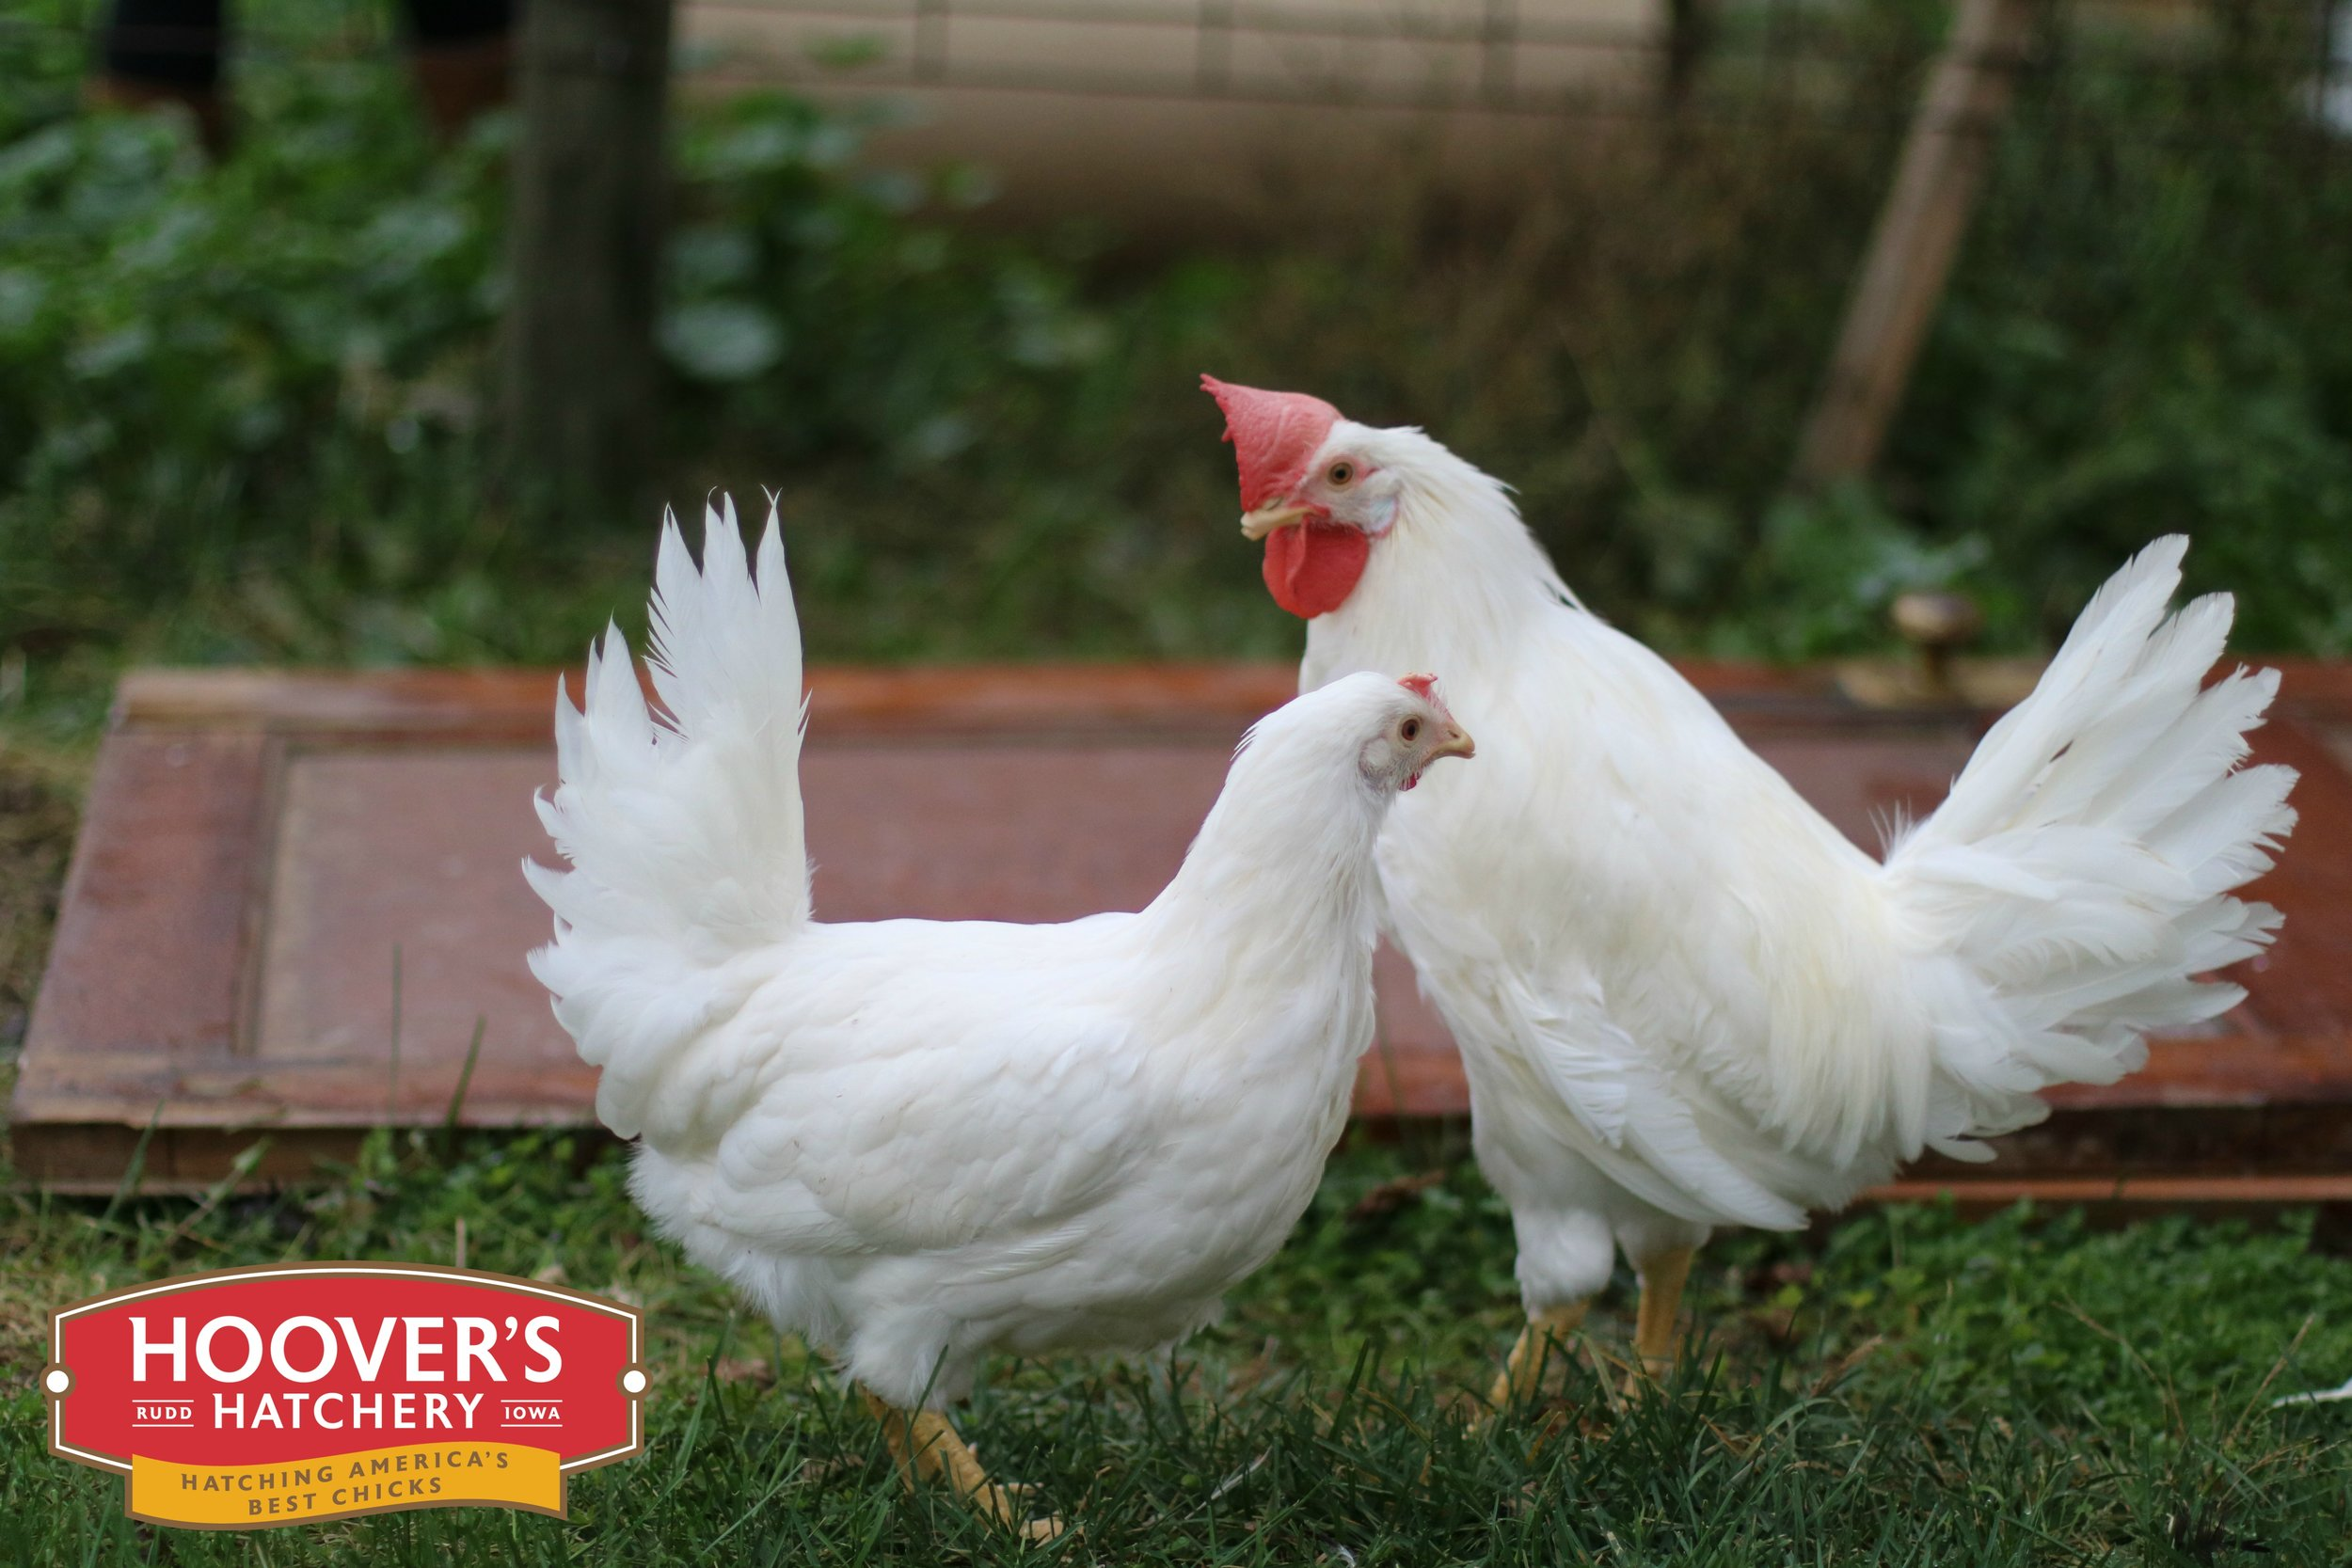 White Leghorn - Years ago a small amazingly productive chicken breed was imported from Italy through the port of Livorno.